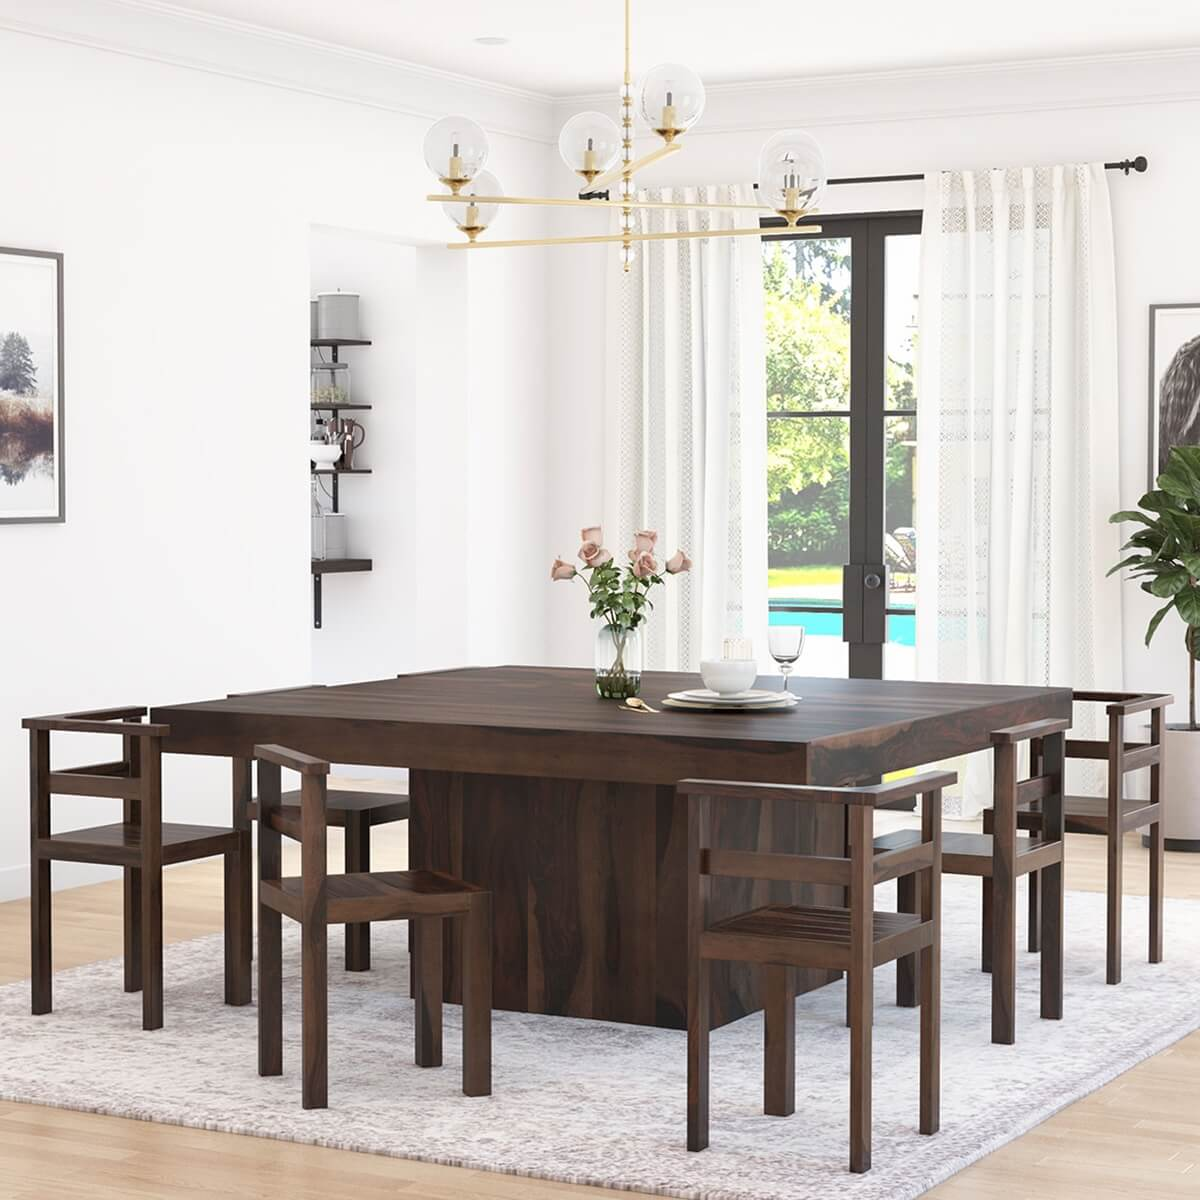 Modern Rustic Solid Wood 64quot Square Pedestal Dining Table  : 6906 from www.sierralivingconcepts.com size 1200 x 1200 jpeg 119kB